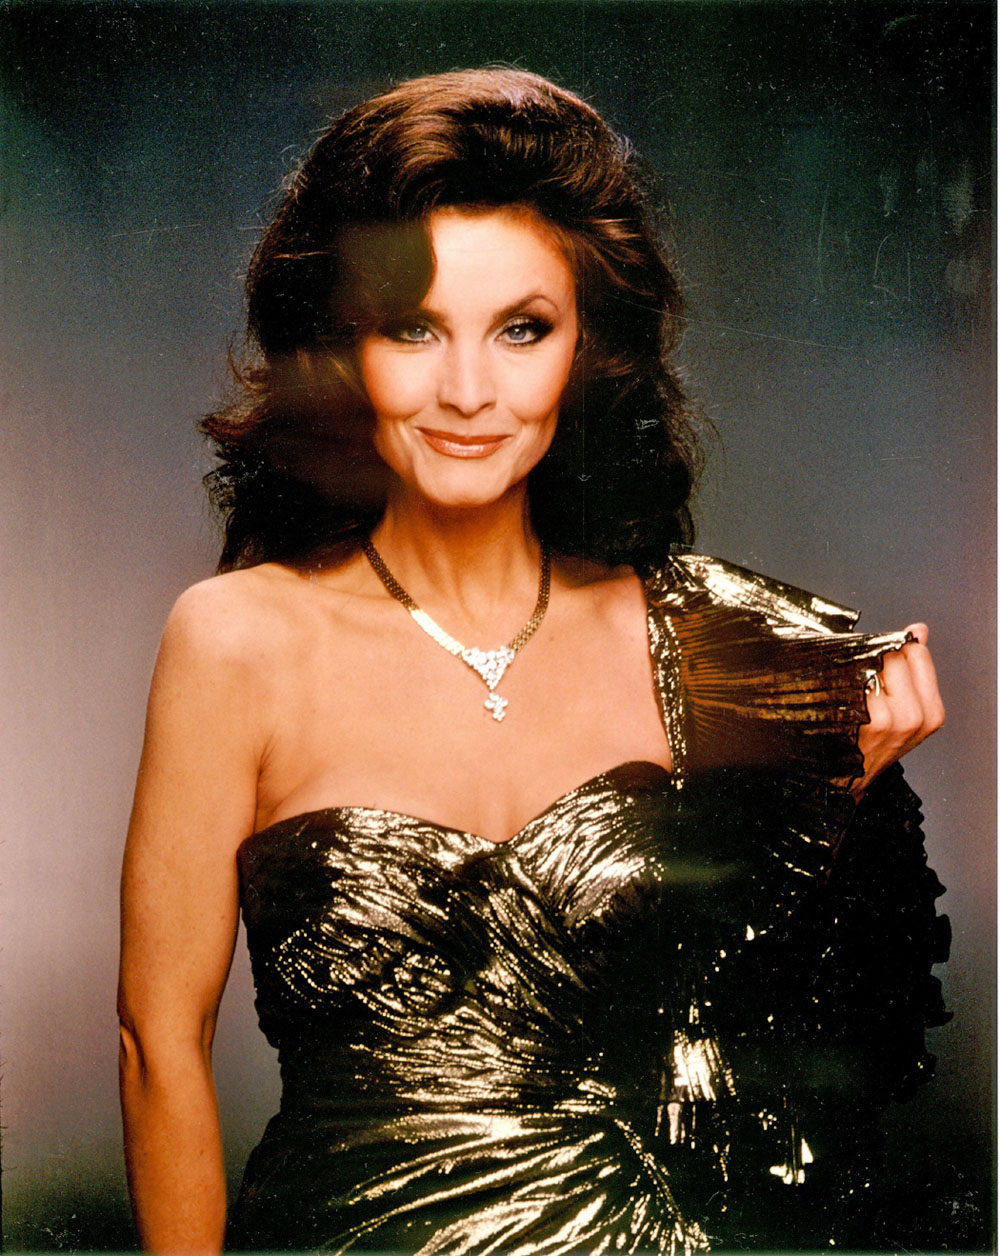 pictures Kate O'Mara